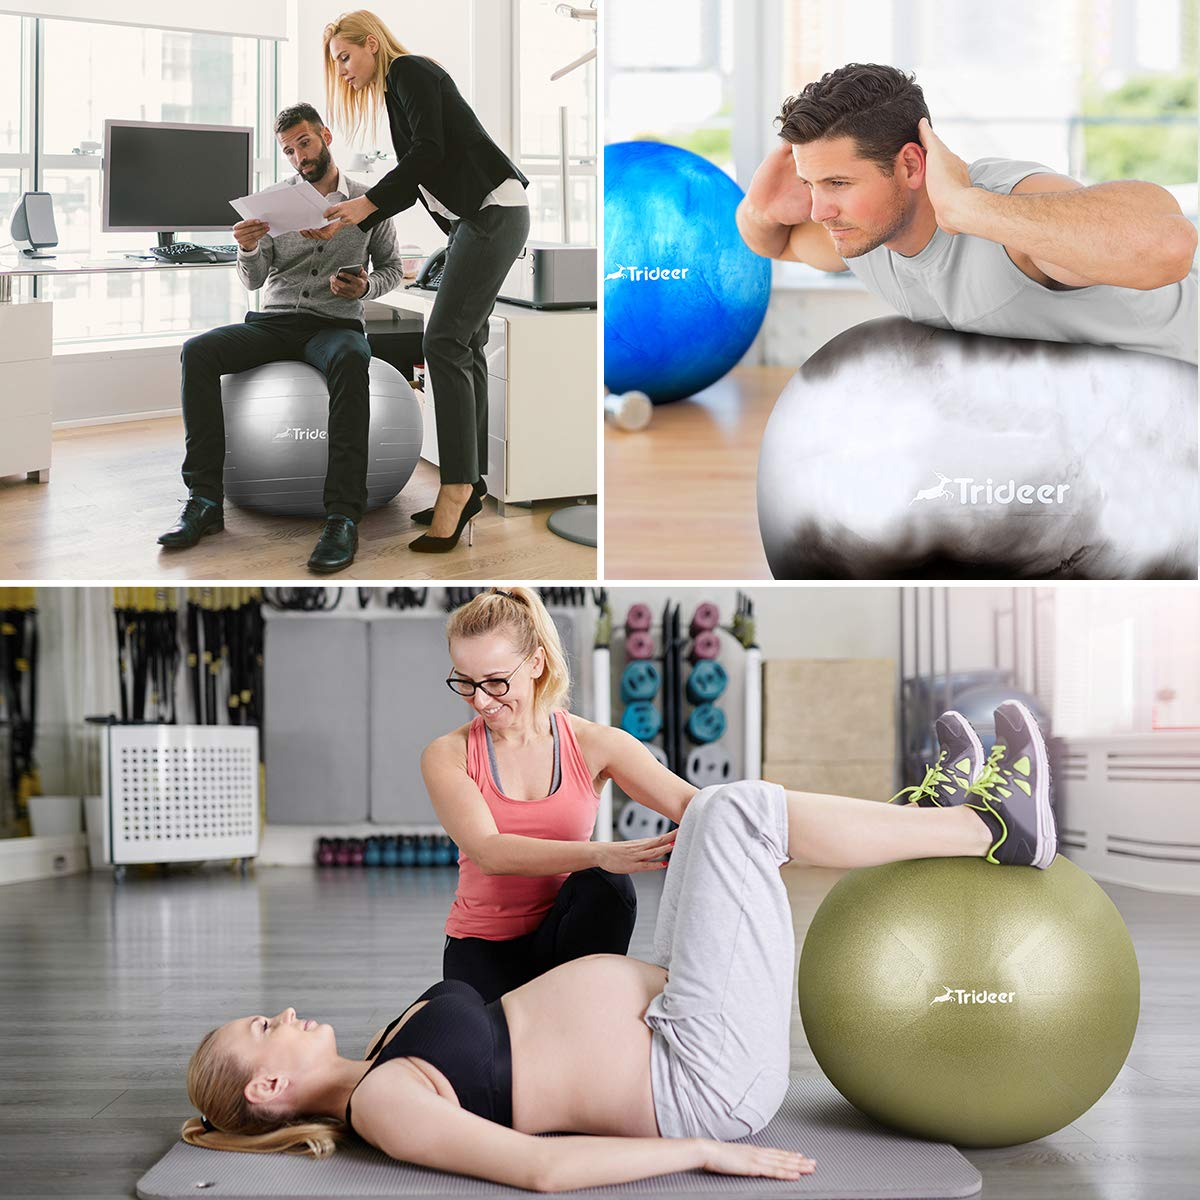 Trideer Exercise Ball (Multiple Color), Yoga Ball, Birthing Ball with Quick Pump, Anti-Burst & Extra Thick, Heavy Duty Ball Chair, Stability Ball Supports 2200lbs by Trideer (Image #3)